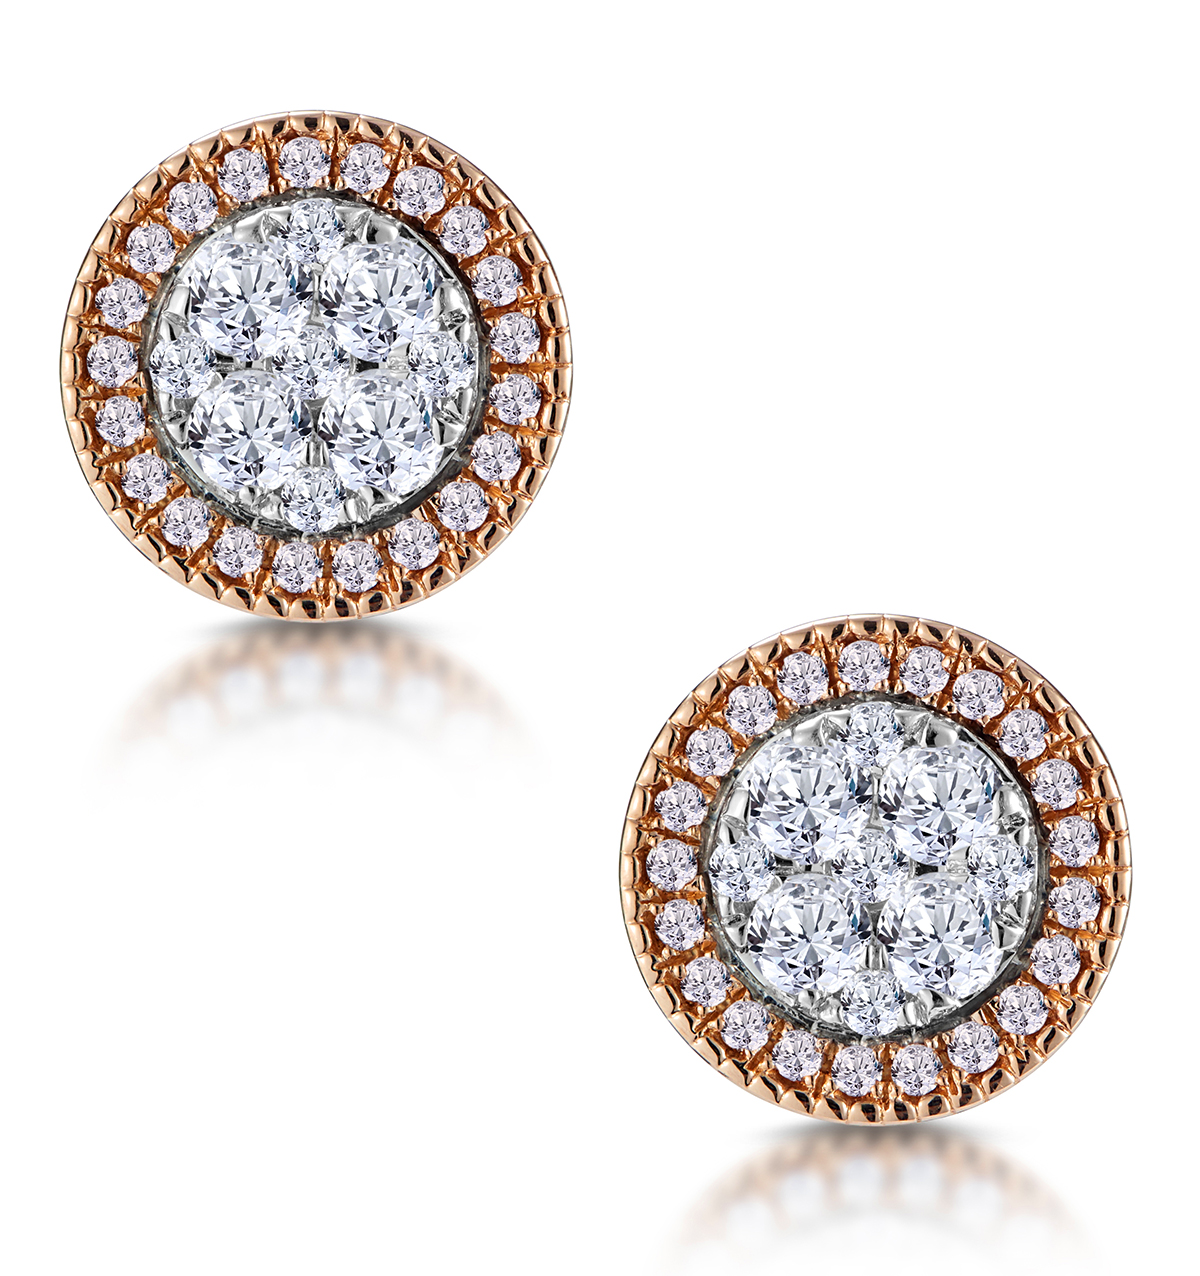 DIAMOND AND PINK DIAMOND HALO ASTERIA CIRCLE EARRINGS 18K ROSE GOLD